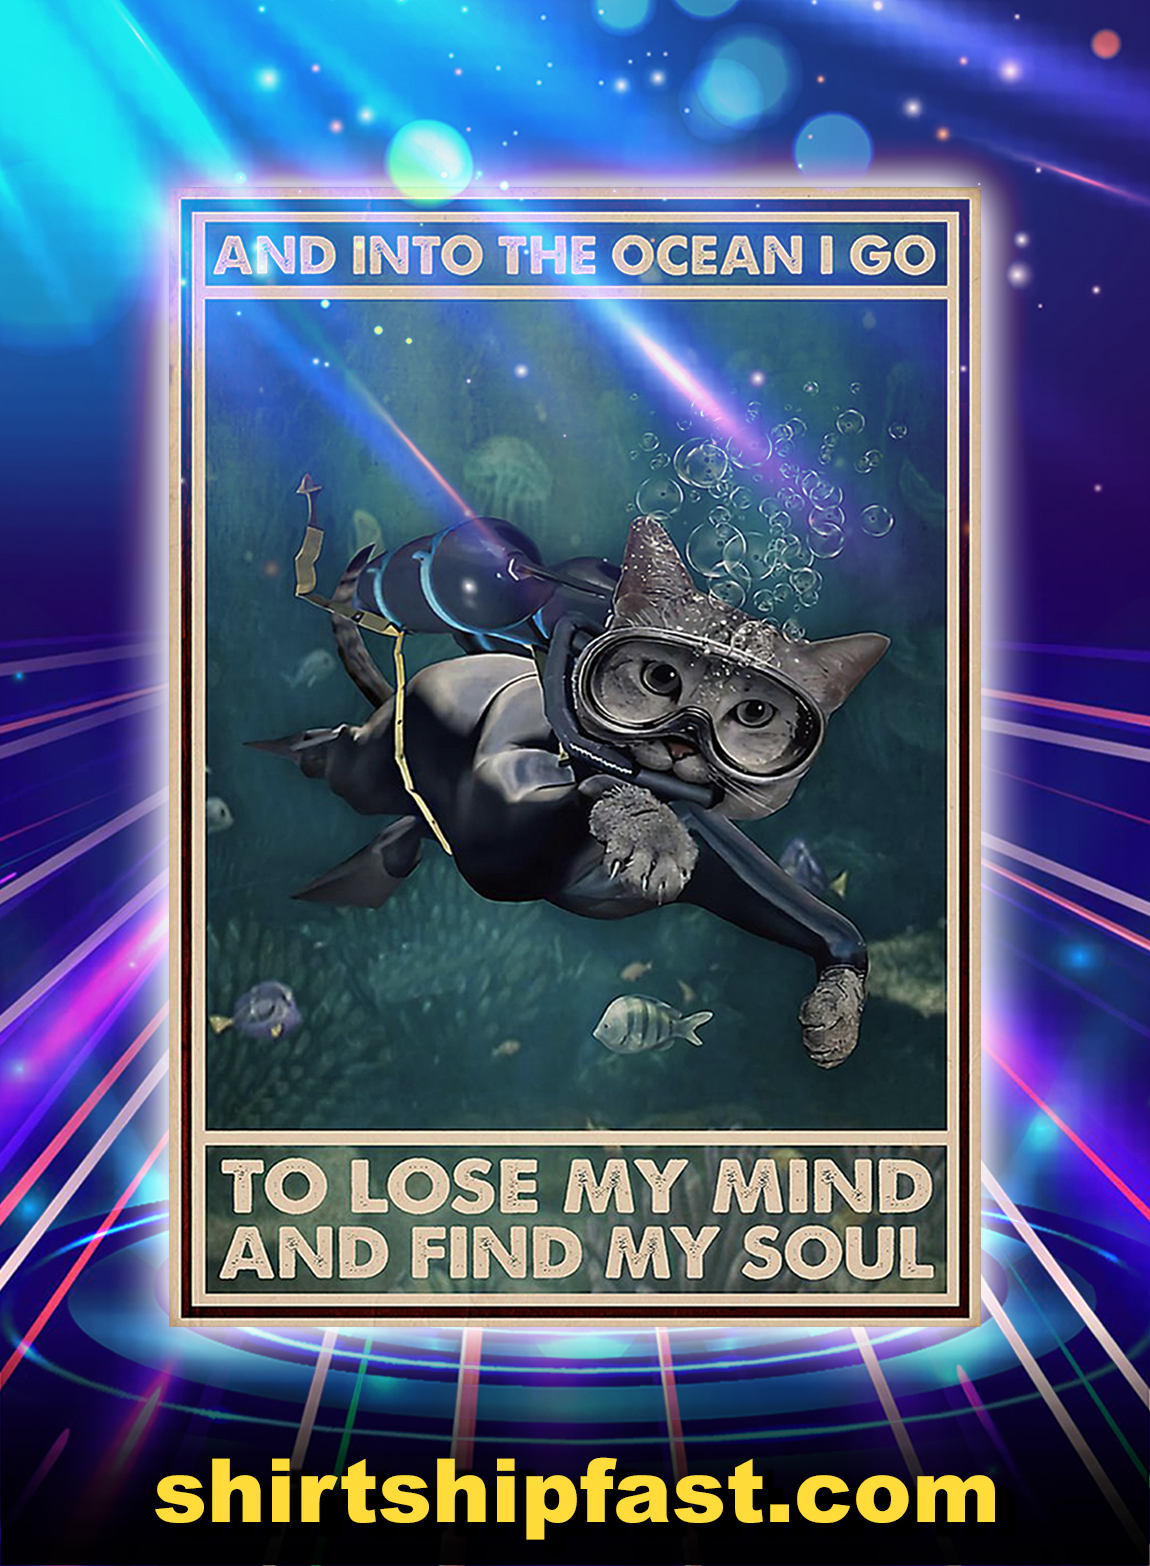 Scuba diving cat and into the ocean i go to lose my mind and find my soul poster - A3